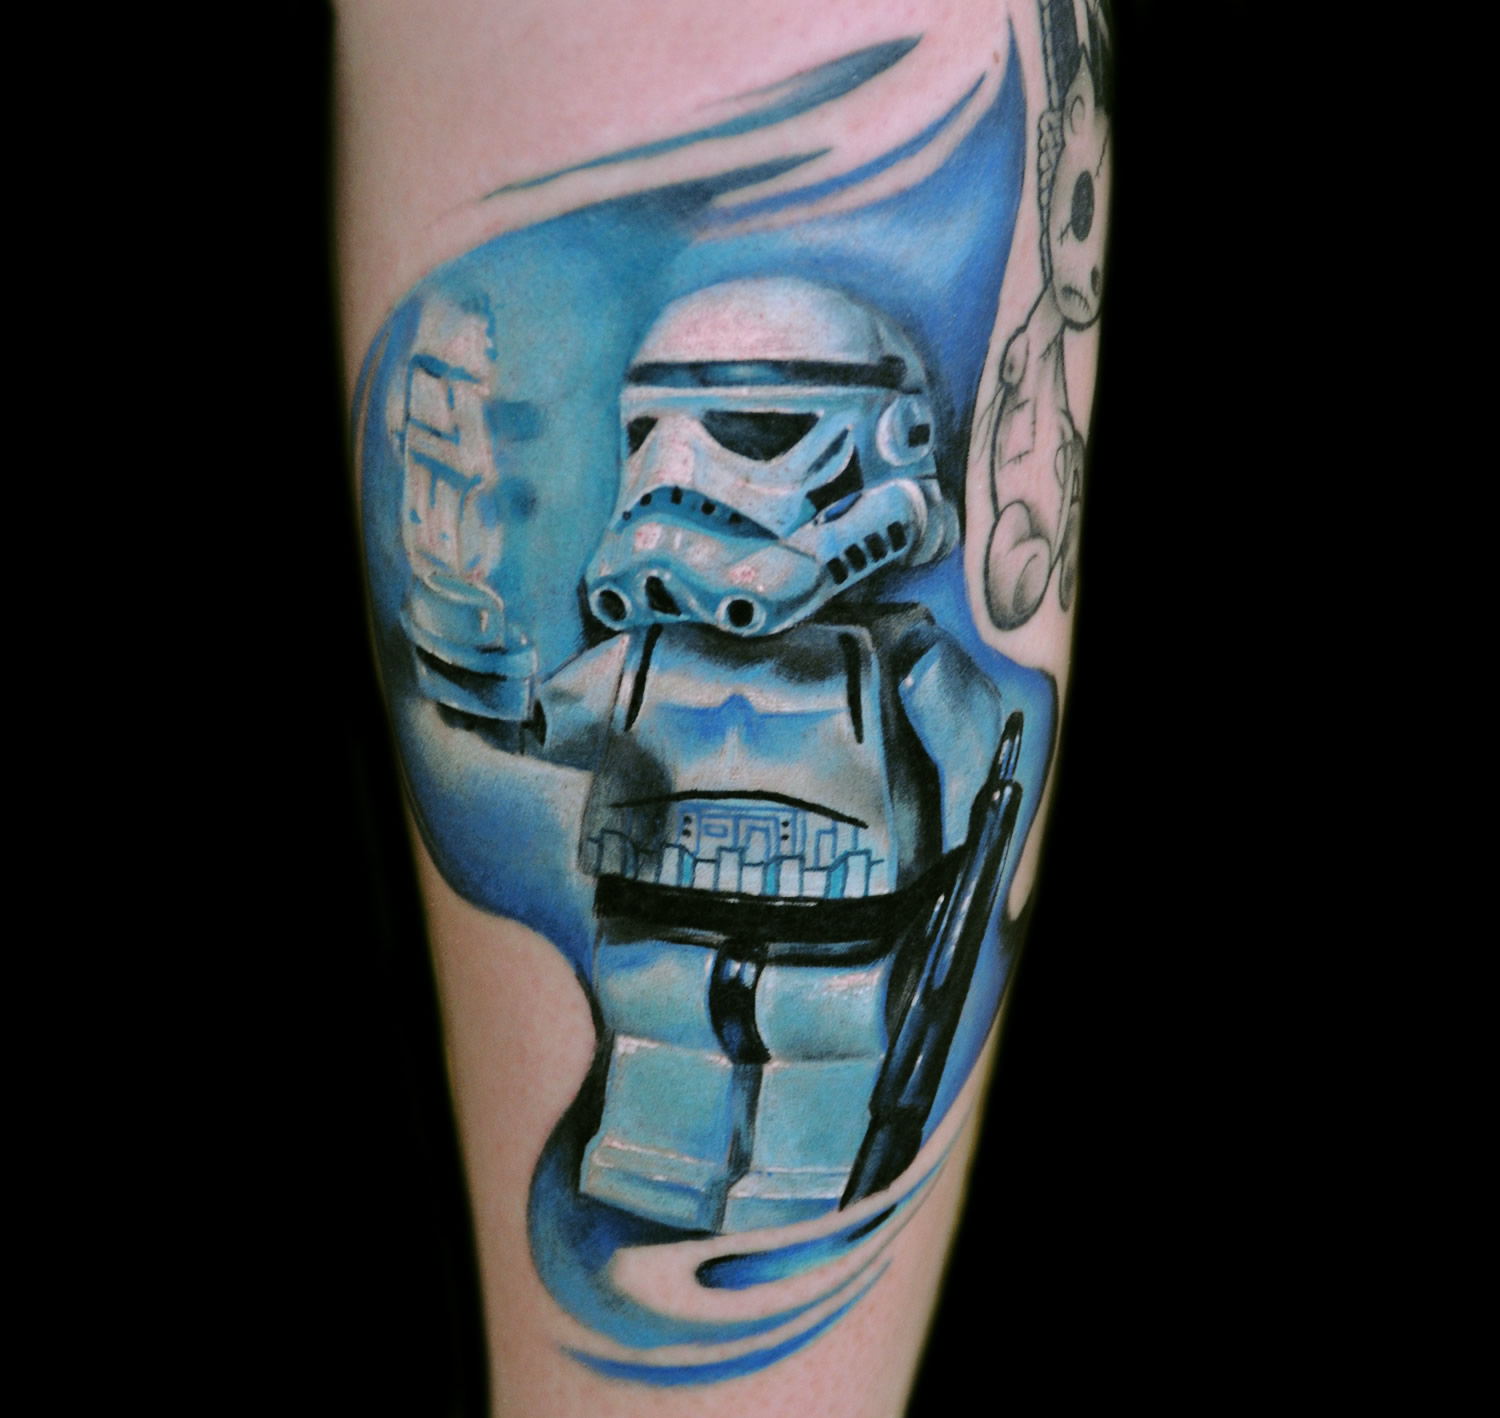 stormtrooper lego character tattoo